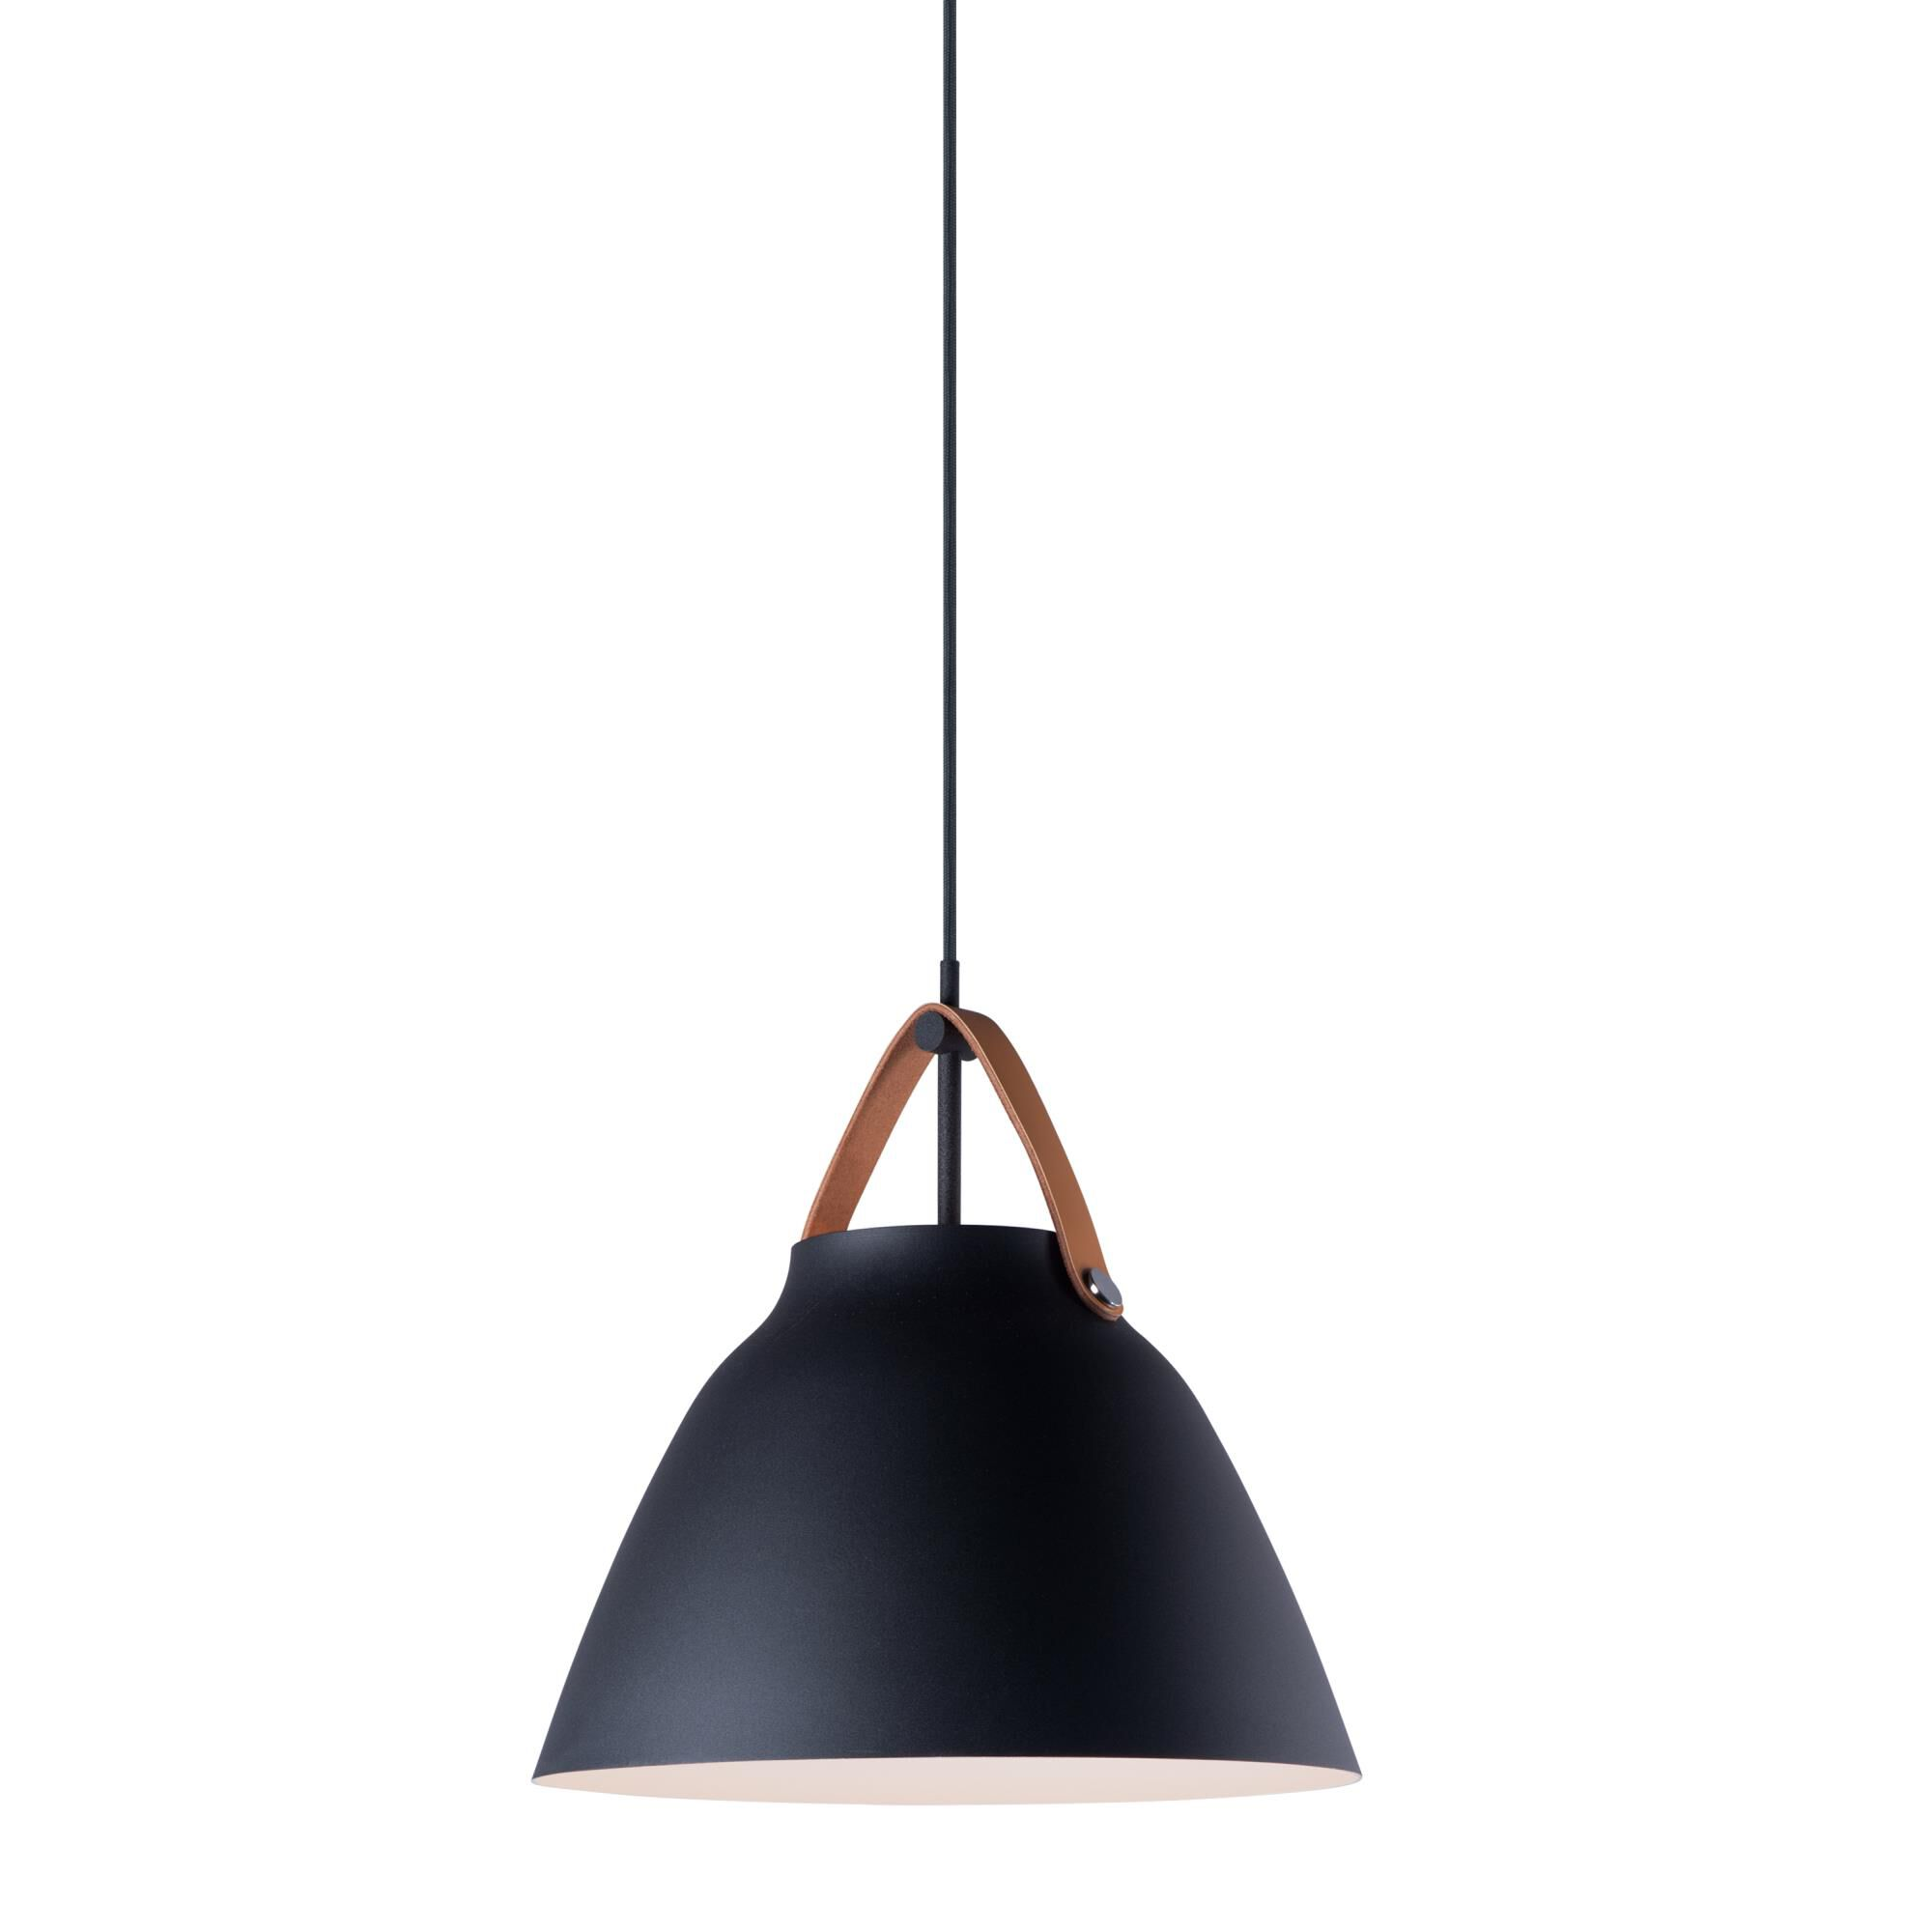 Maxim Lighting Nordic 14 Inch Mini Pendant Nordic - 11356TNBK - Modern Contemporary Mini Pendant